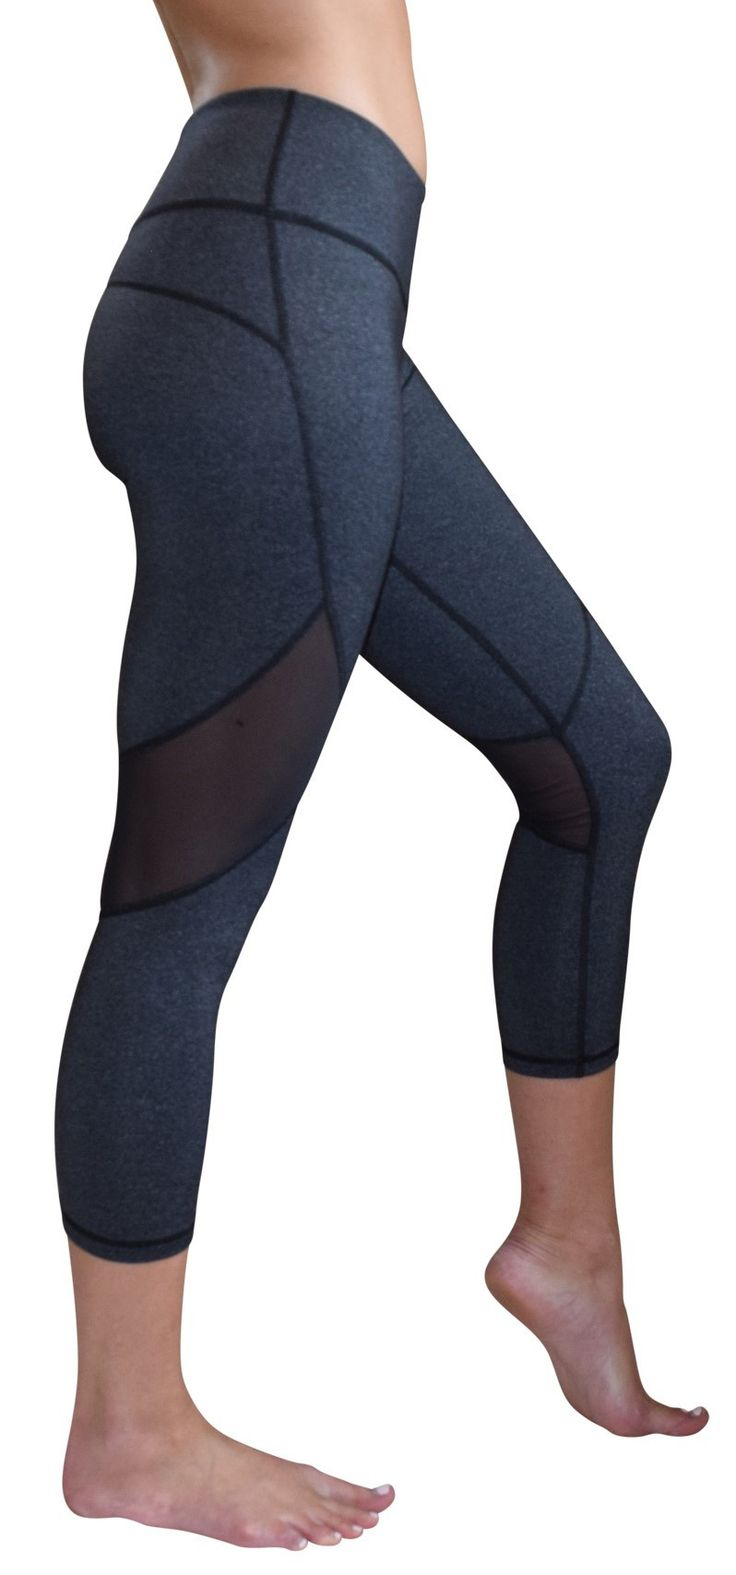 - High Quality Breathable Mesh Yoga Pants, Soft, Comfortable, Tight Fit & Quick Dry - Great for Yoga, Gym, Running, Cycling, and Loungewear - 87% Nylon 13% Spandex - Super Flexible & Durable Material